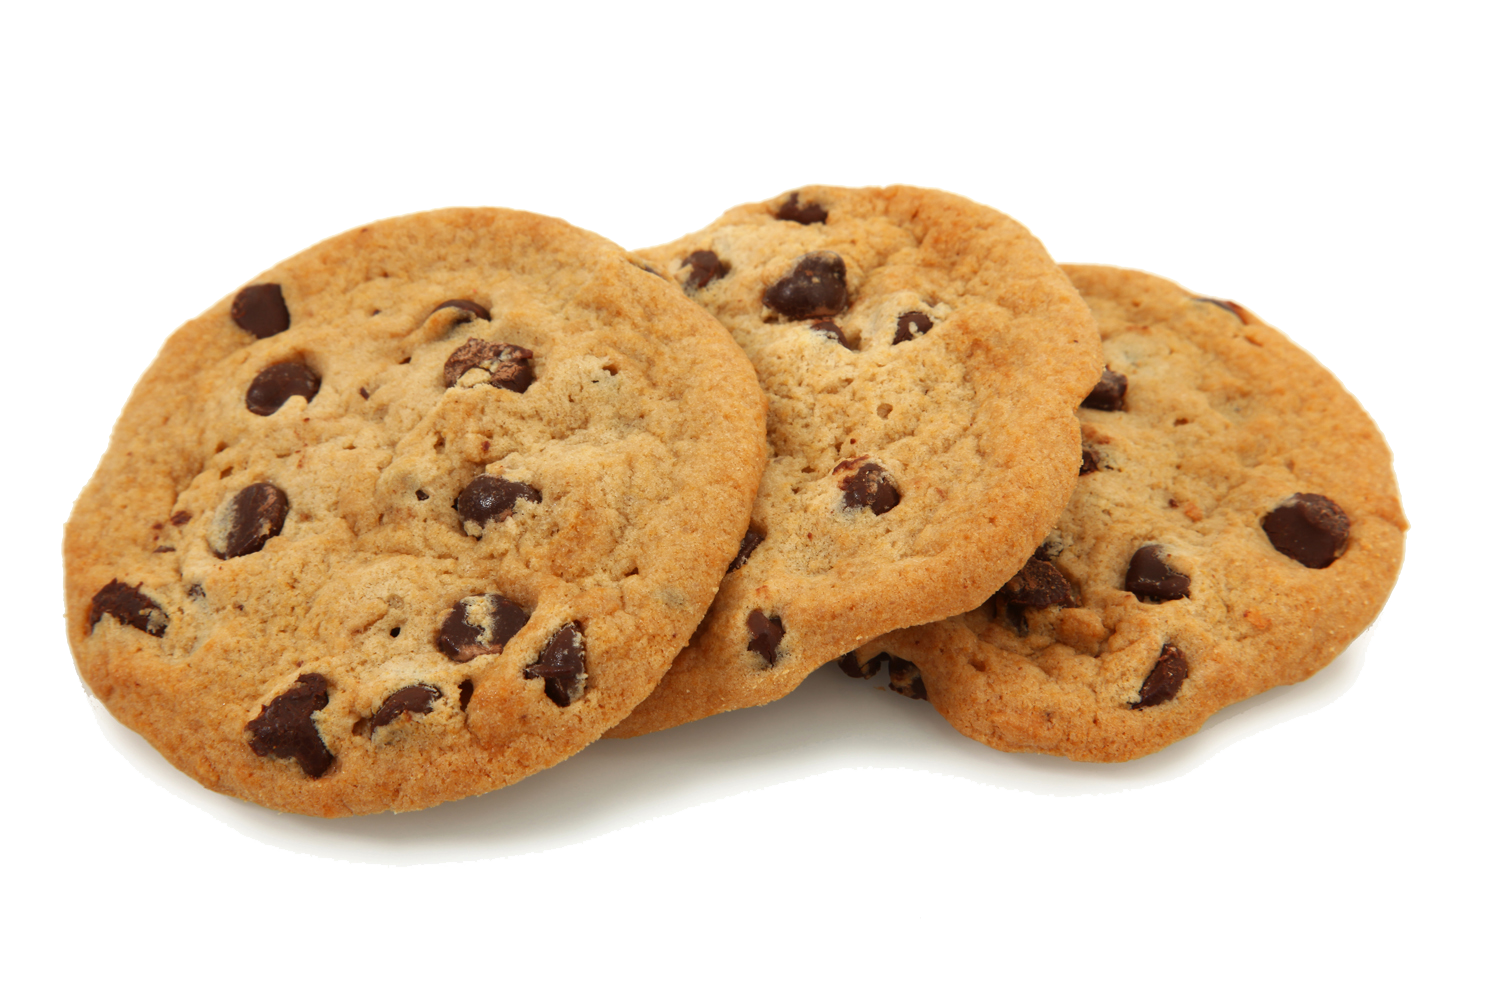 Free Chocolate Chip Cookie Transparent, Download Free Clip.